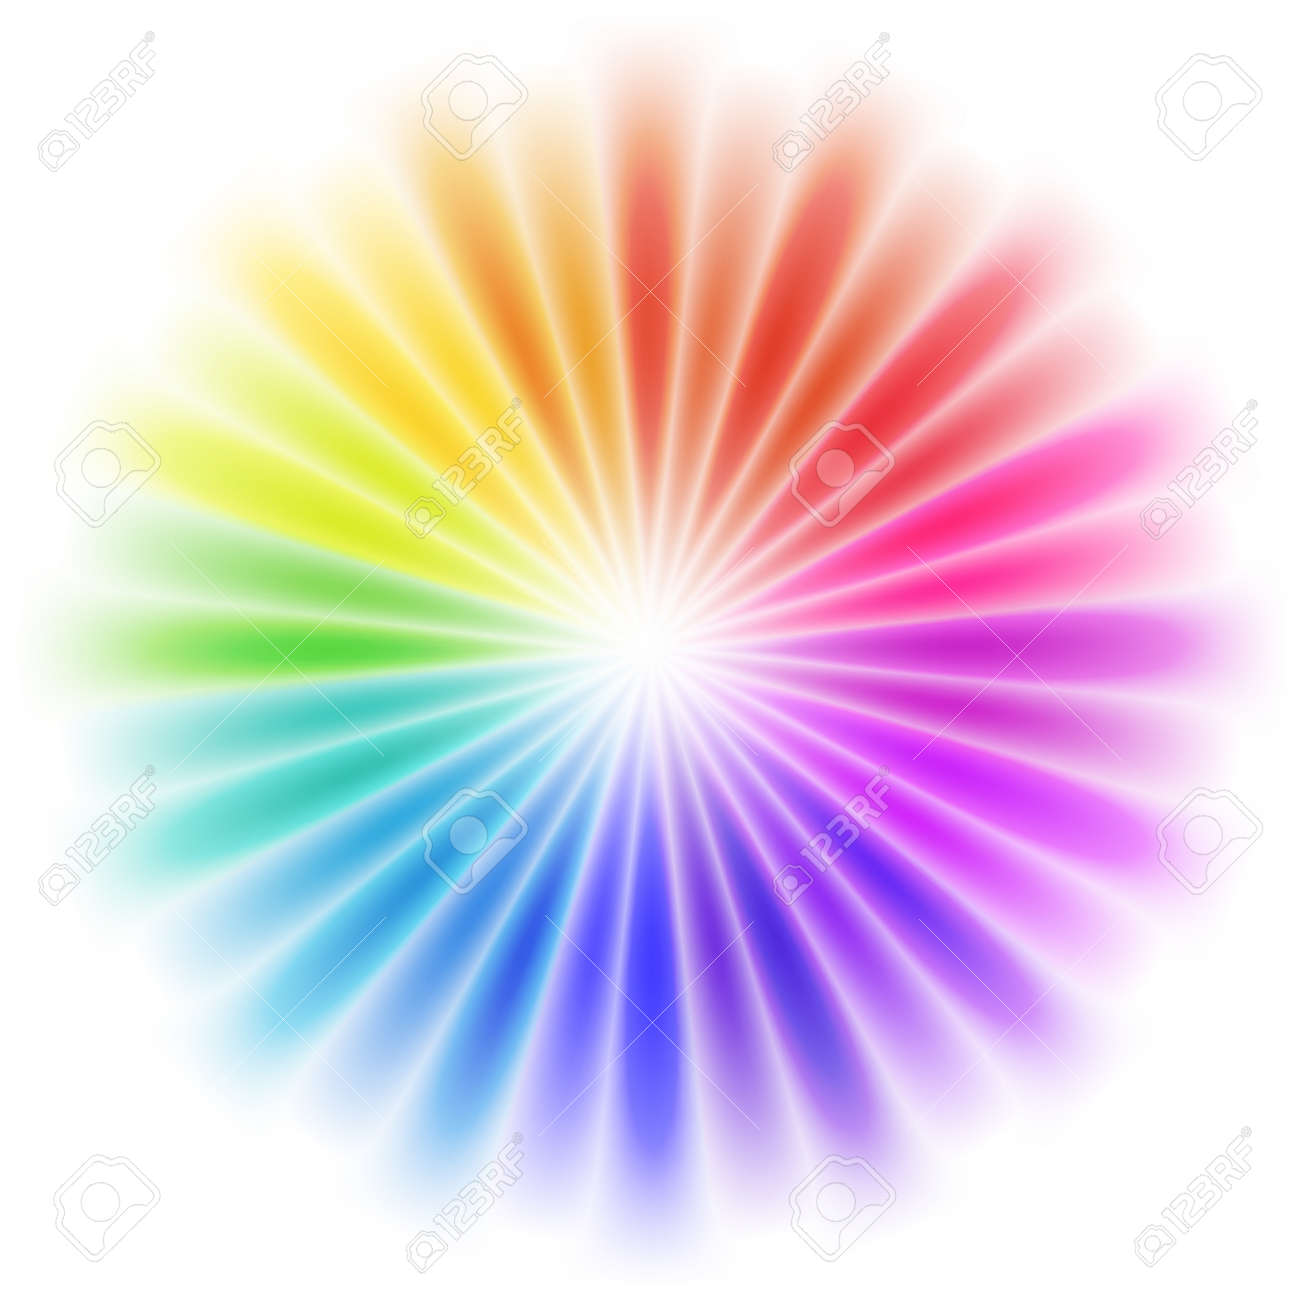 Color chart rainbow - Pantone Color Chart Abstract Colorful Design